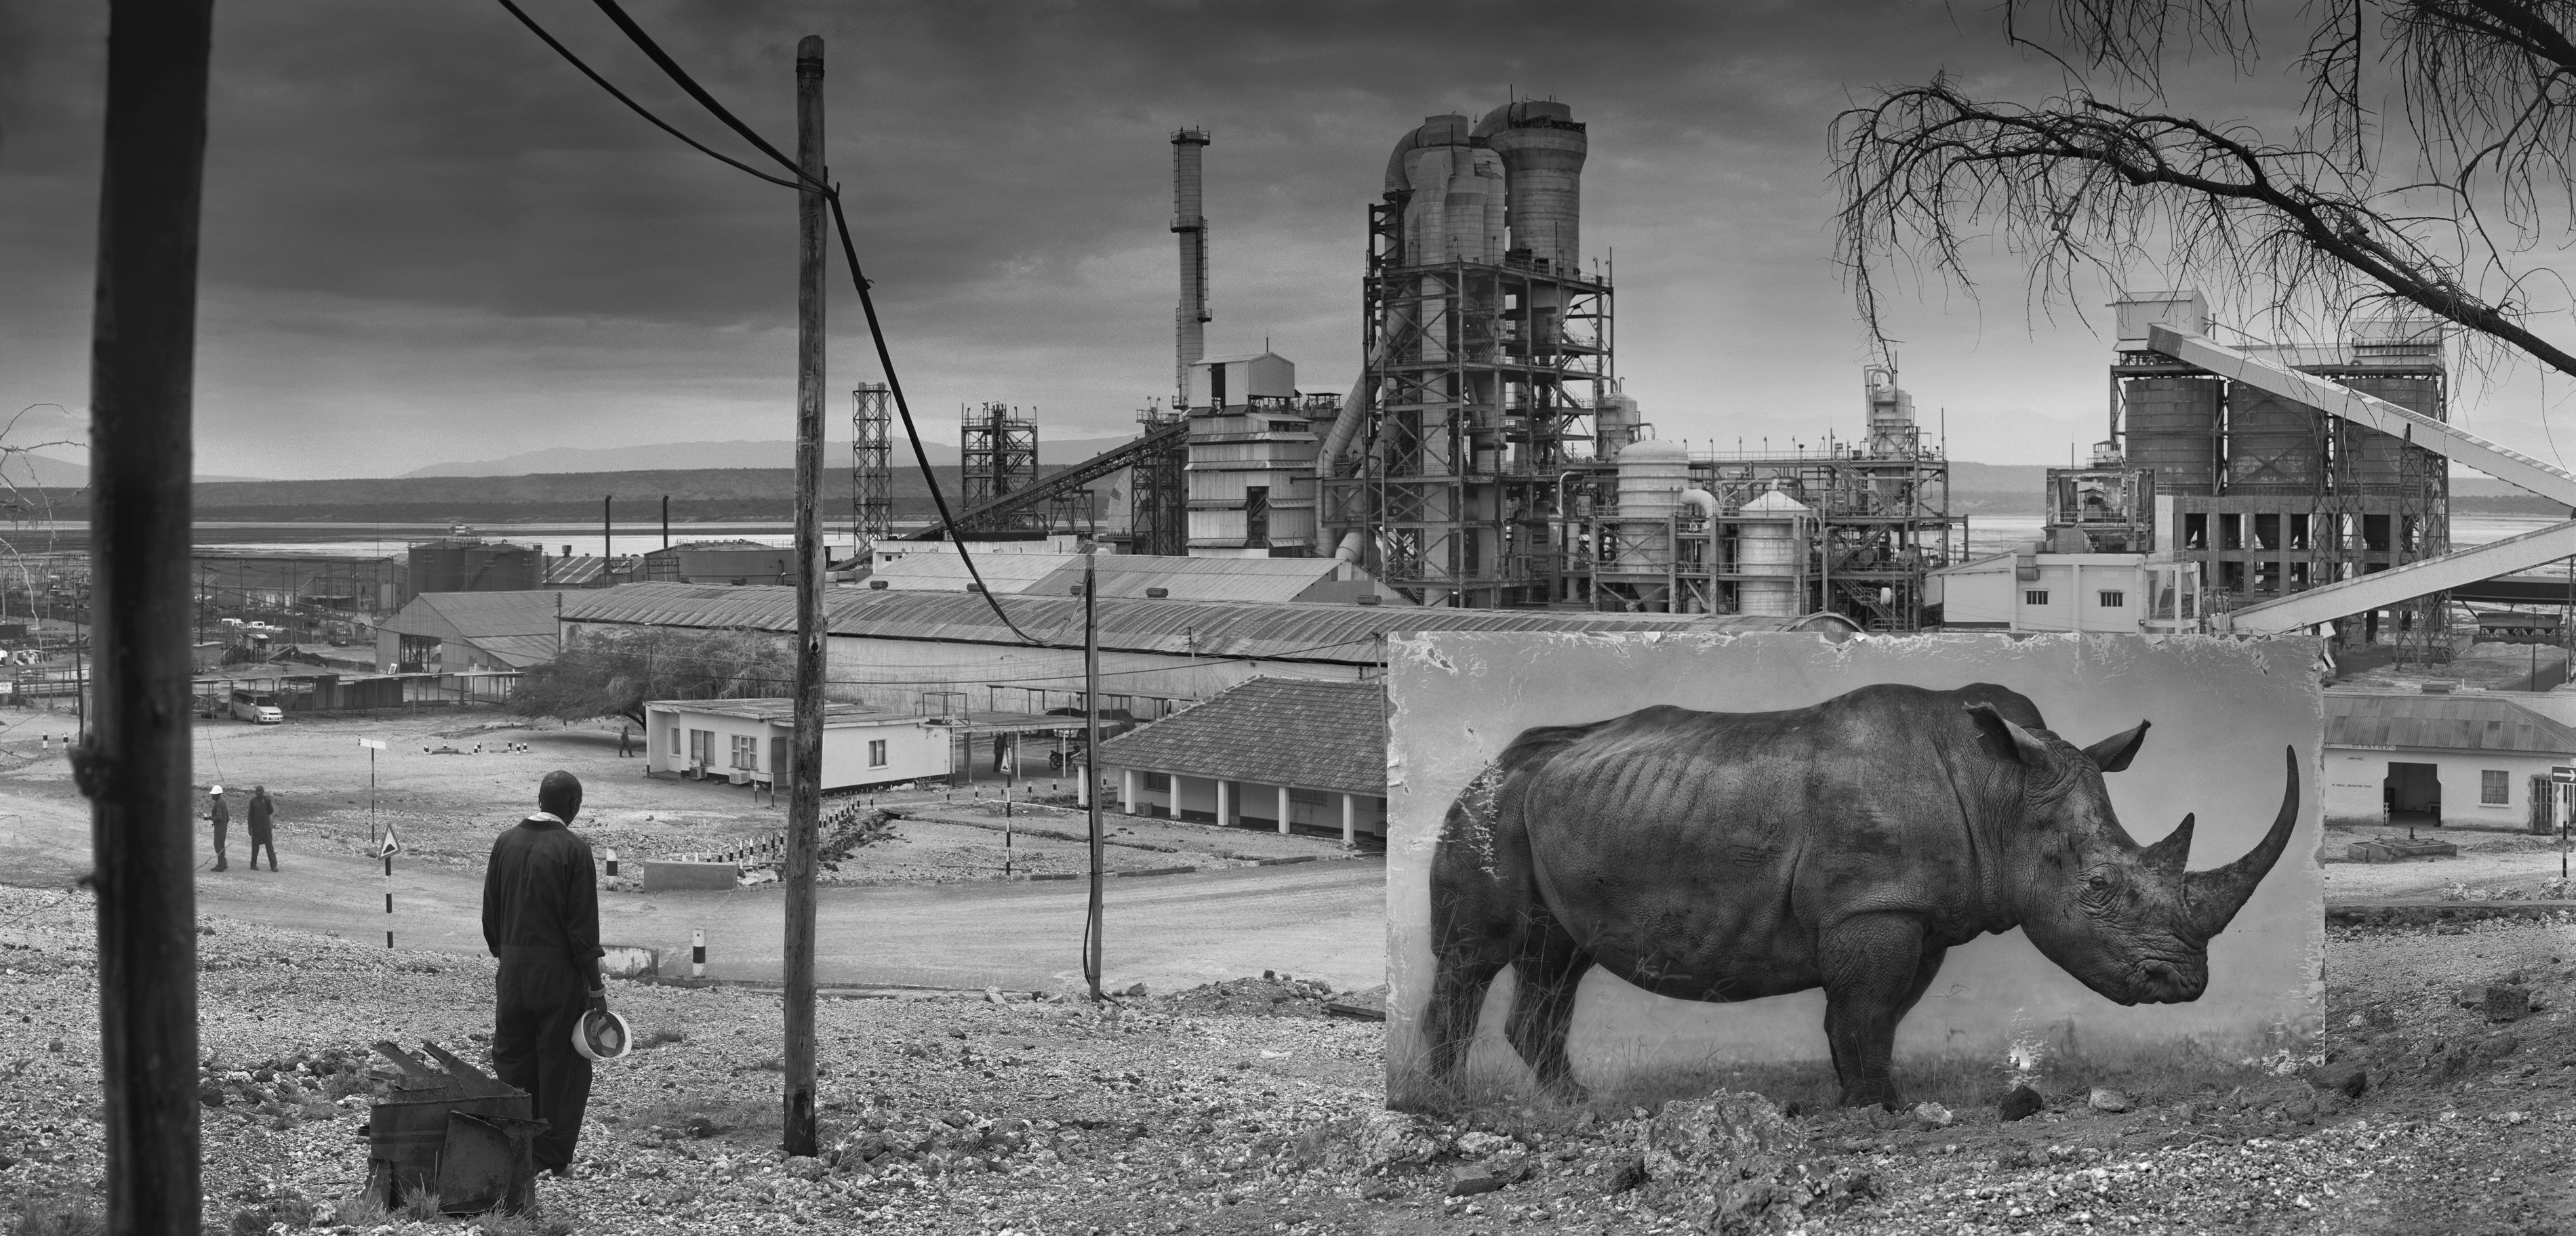 Harrowing Photographs Depict East Africa's Dystopian Future